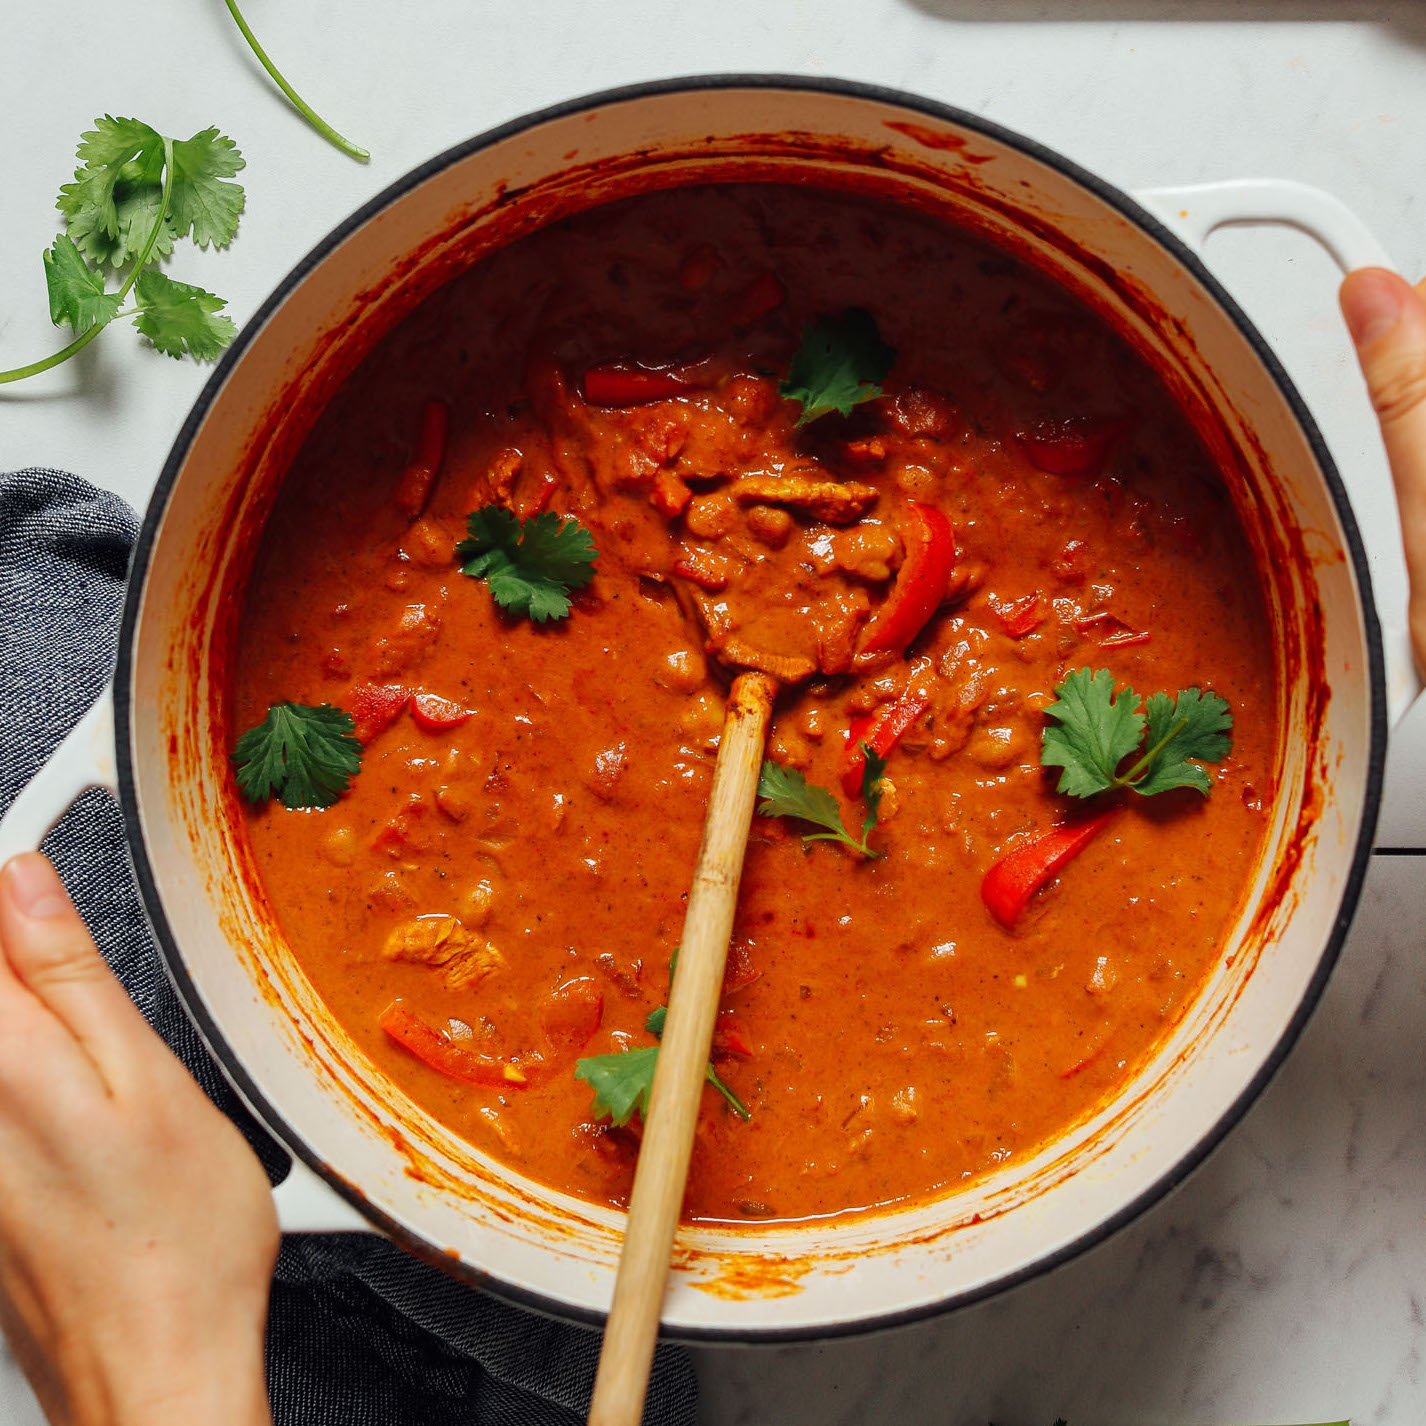 lifting a pot of Tikka Masala garnished with cilantro sprigs and shown with a wooden serving spoon